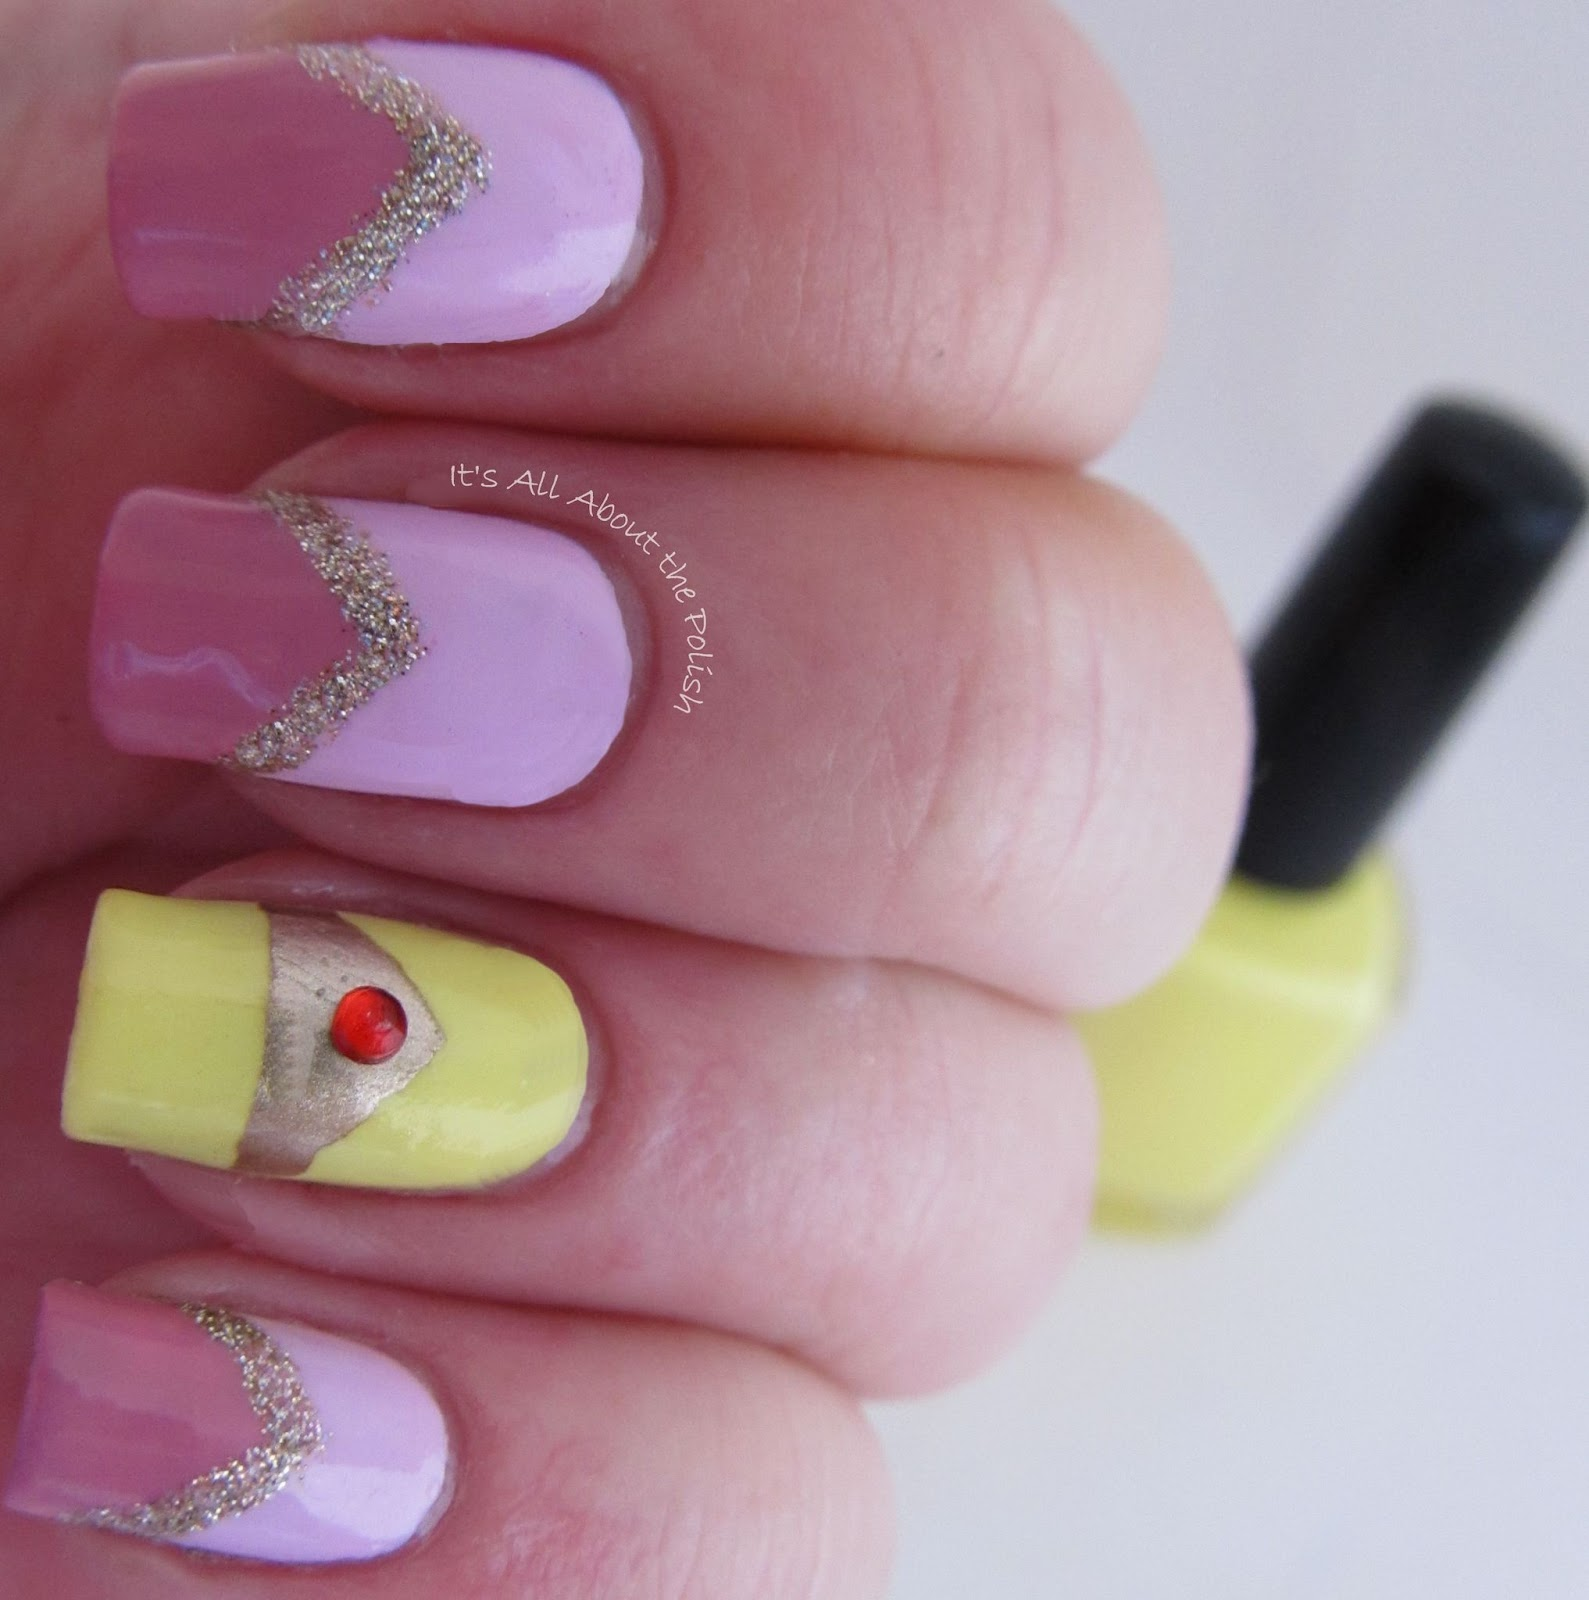 Sleeping Beauty Nails: It's All About The Polish: Disney Princess Challenge